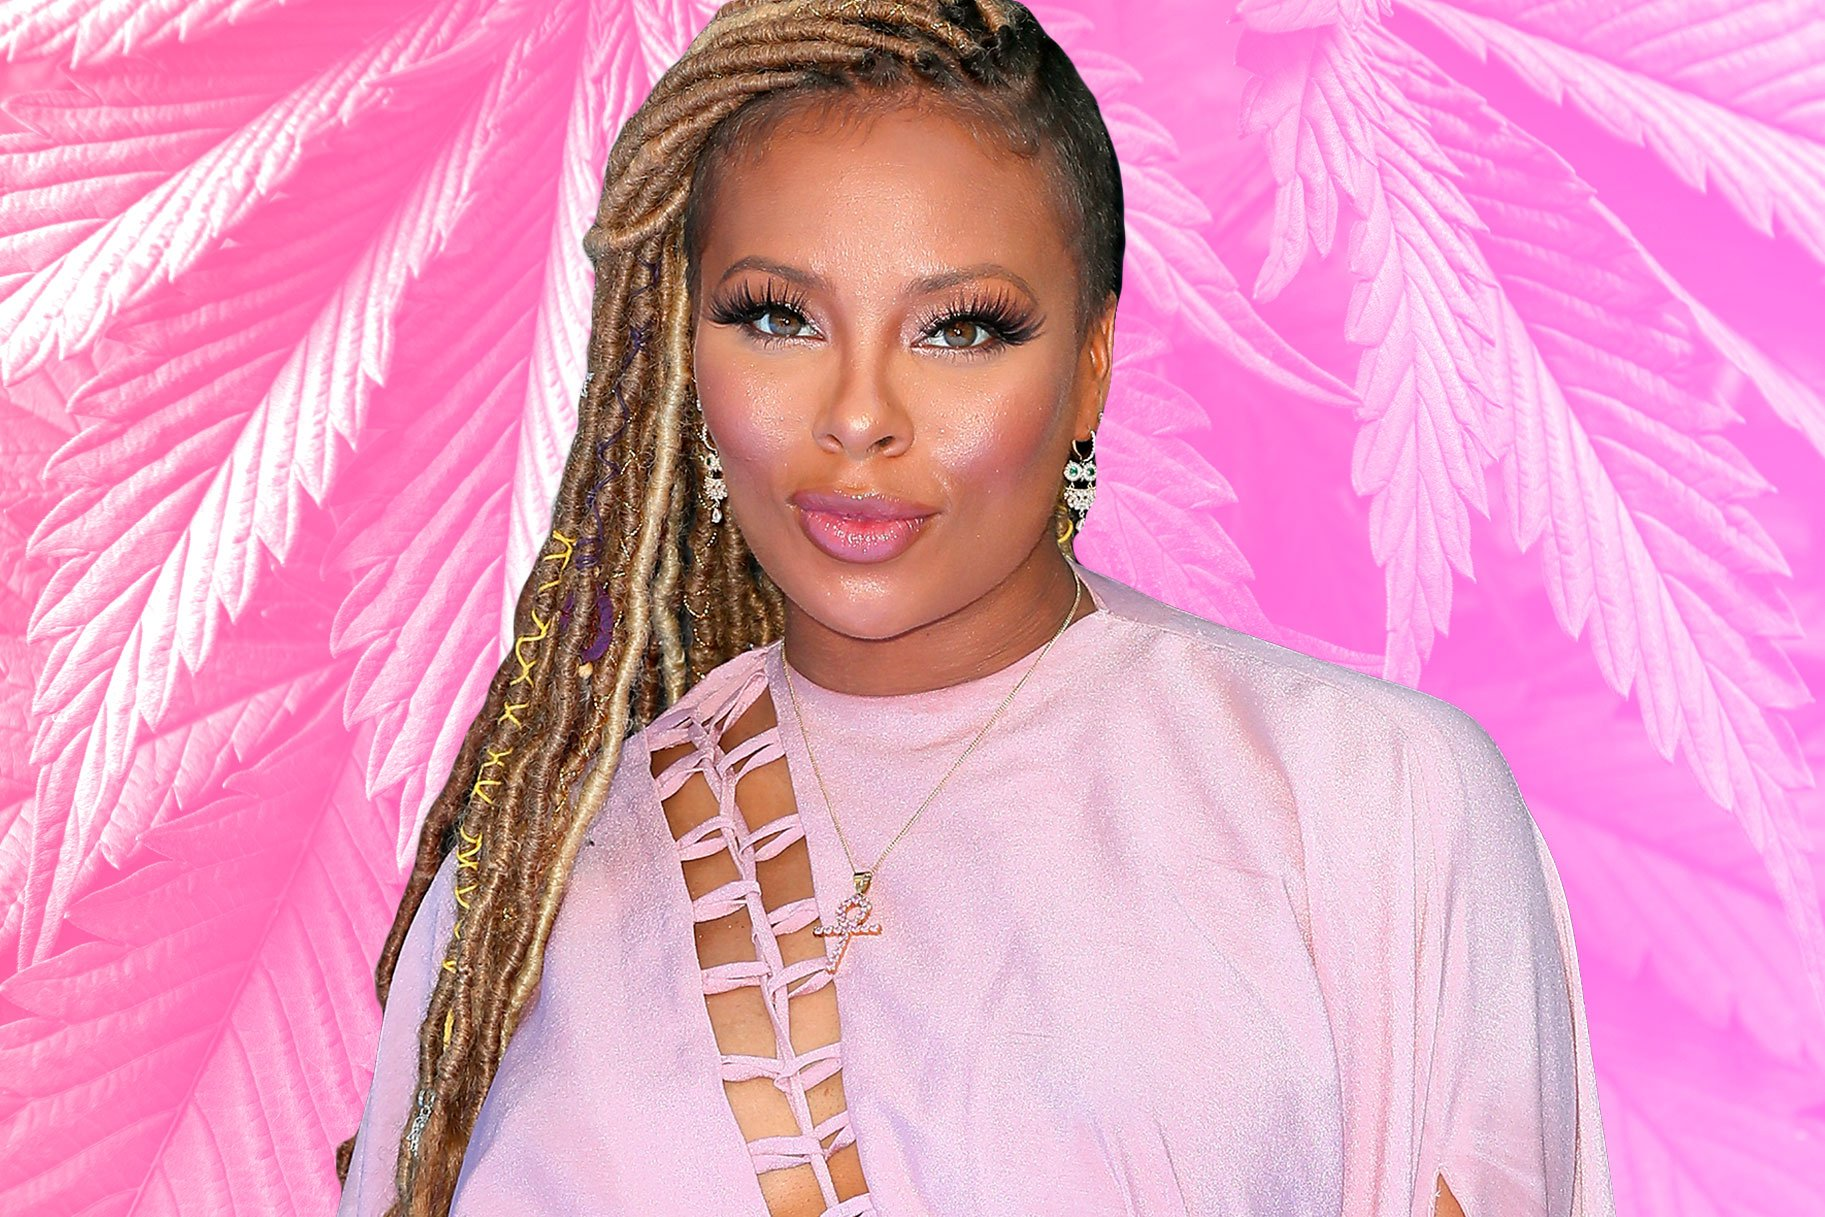 Eva Marcille Reveals A New Collaboration For Her fans – Check Out The New Project